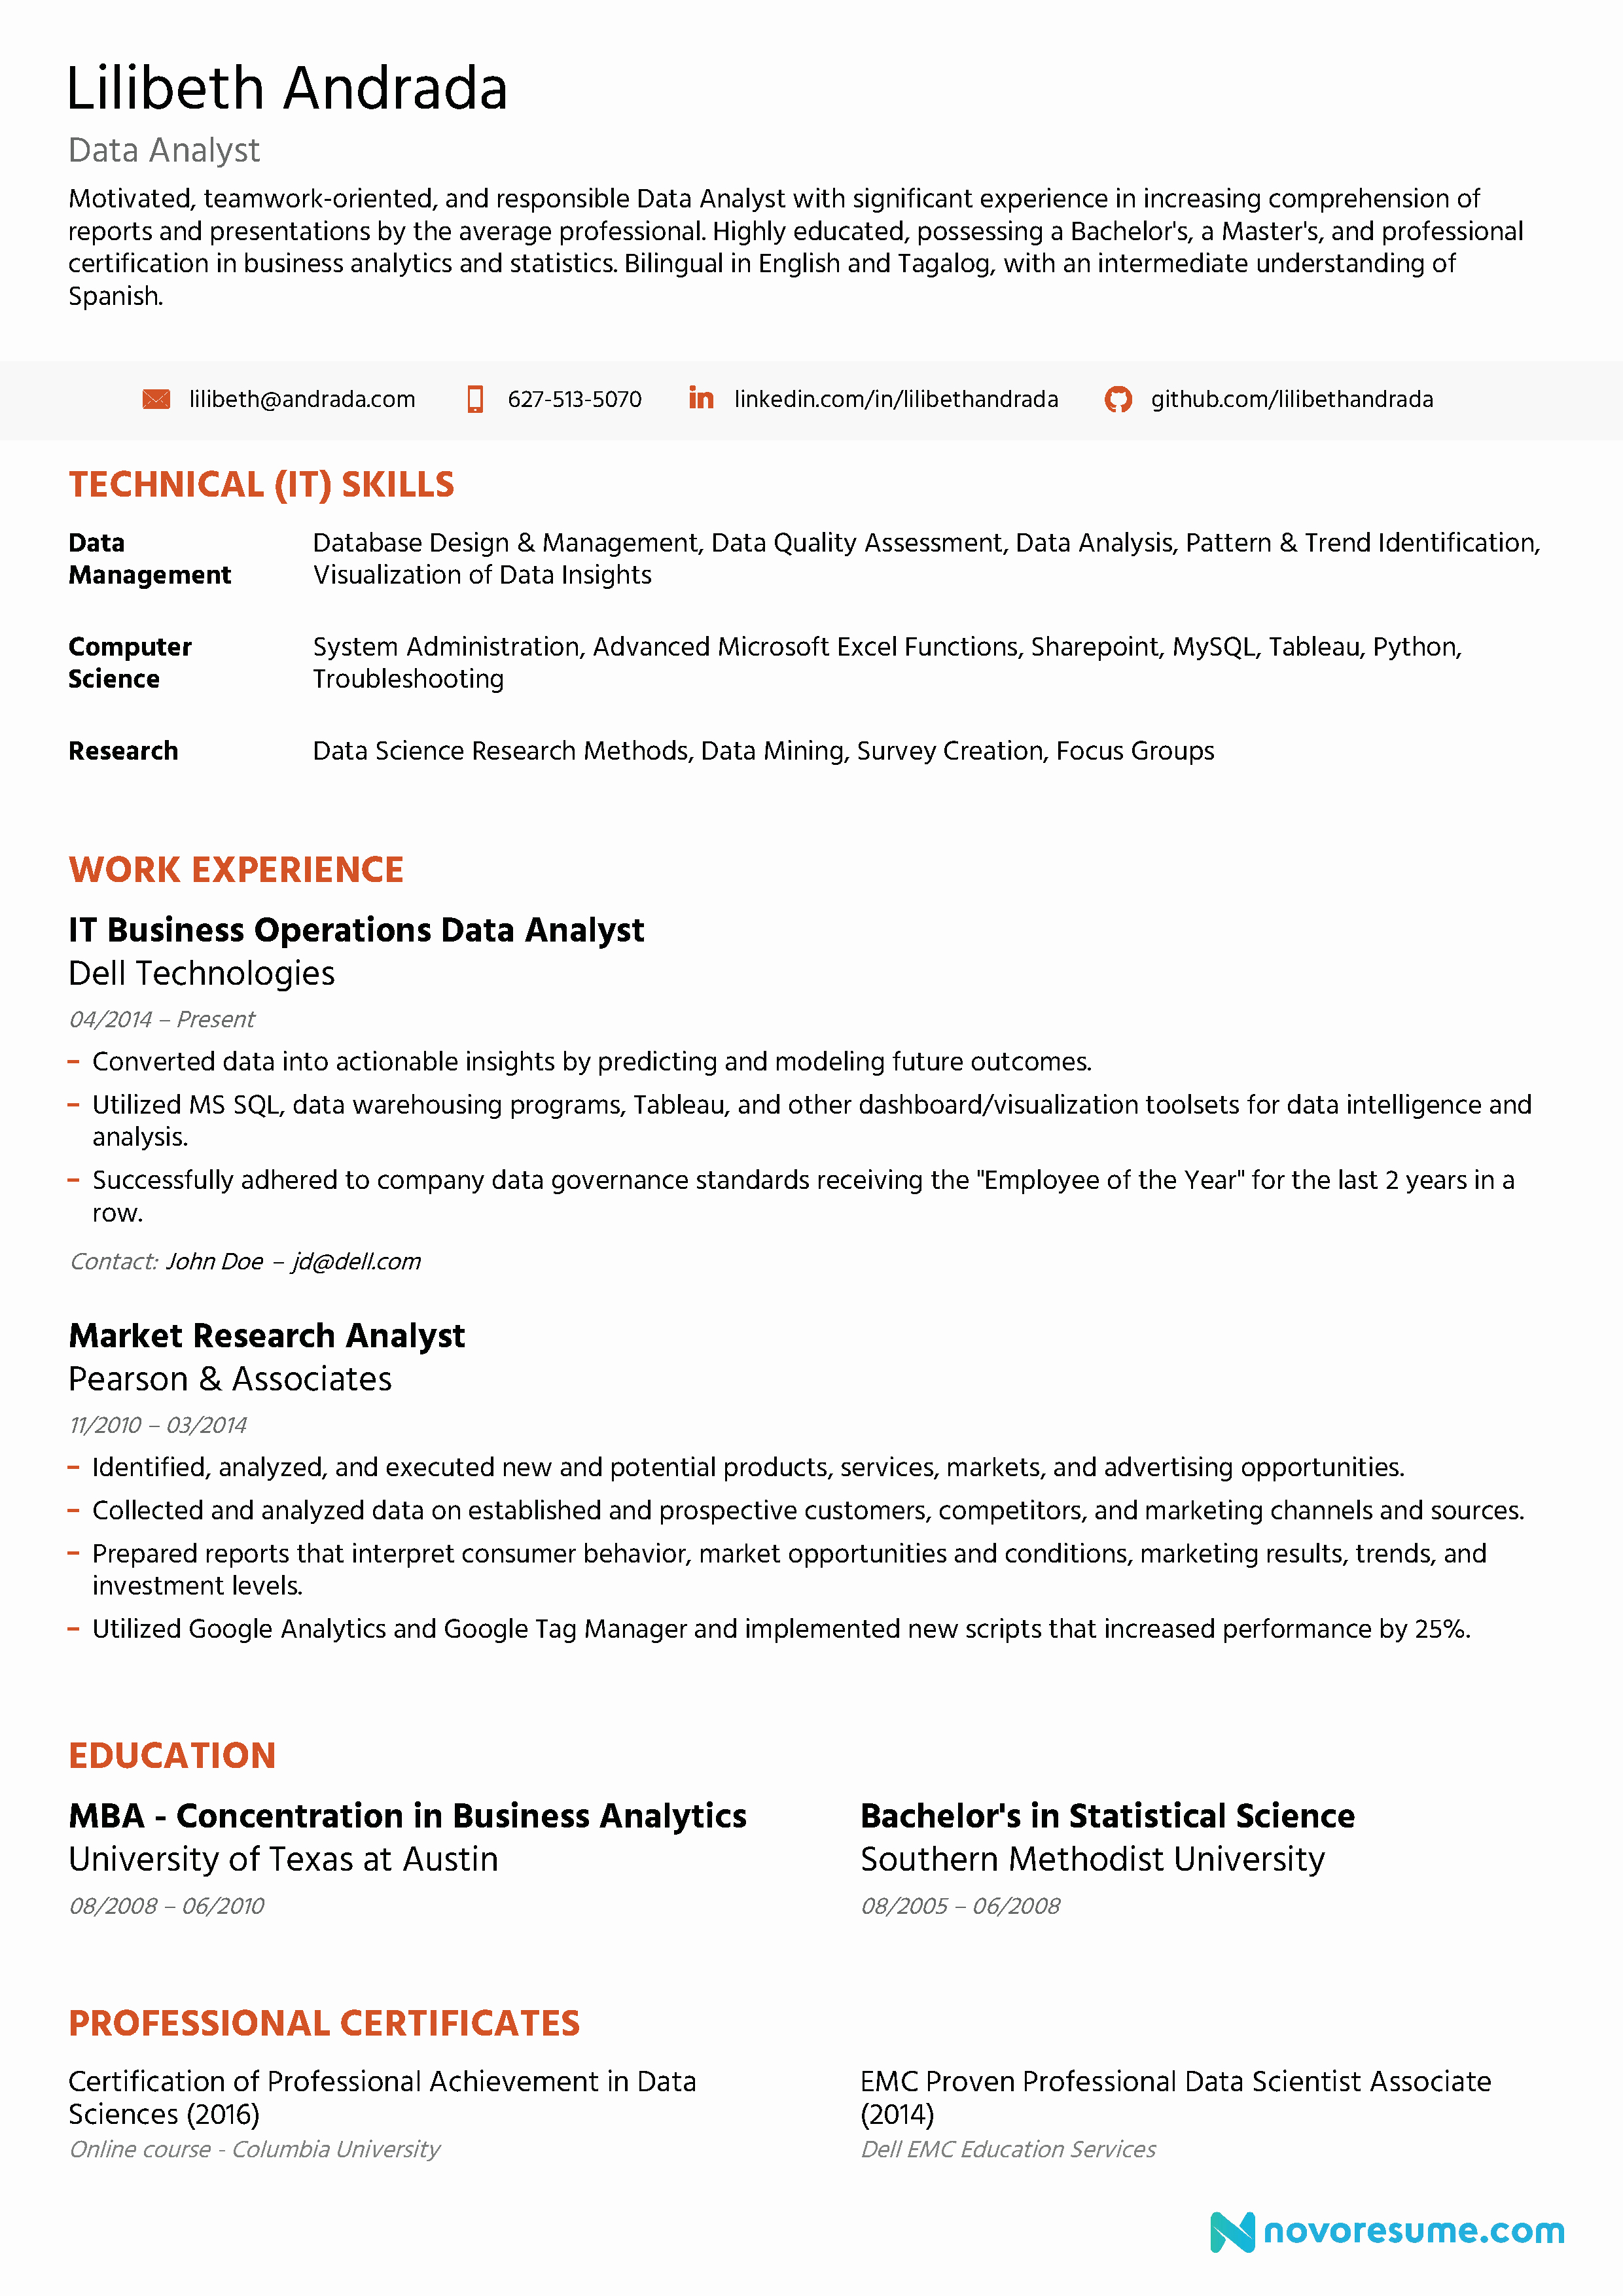 Data Analyst Resume Template Fresh Data Analyst Resume [2019] Guide & Examples